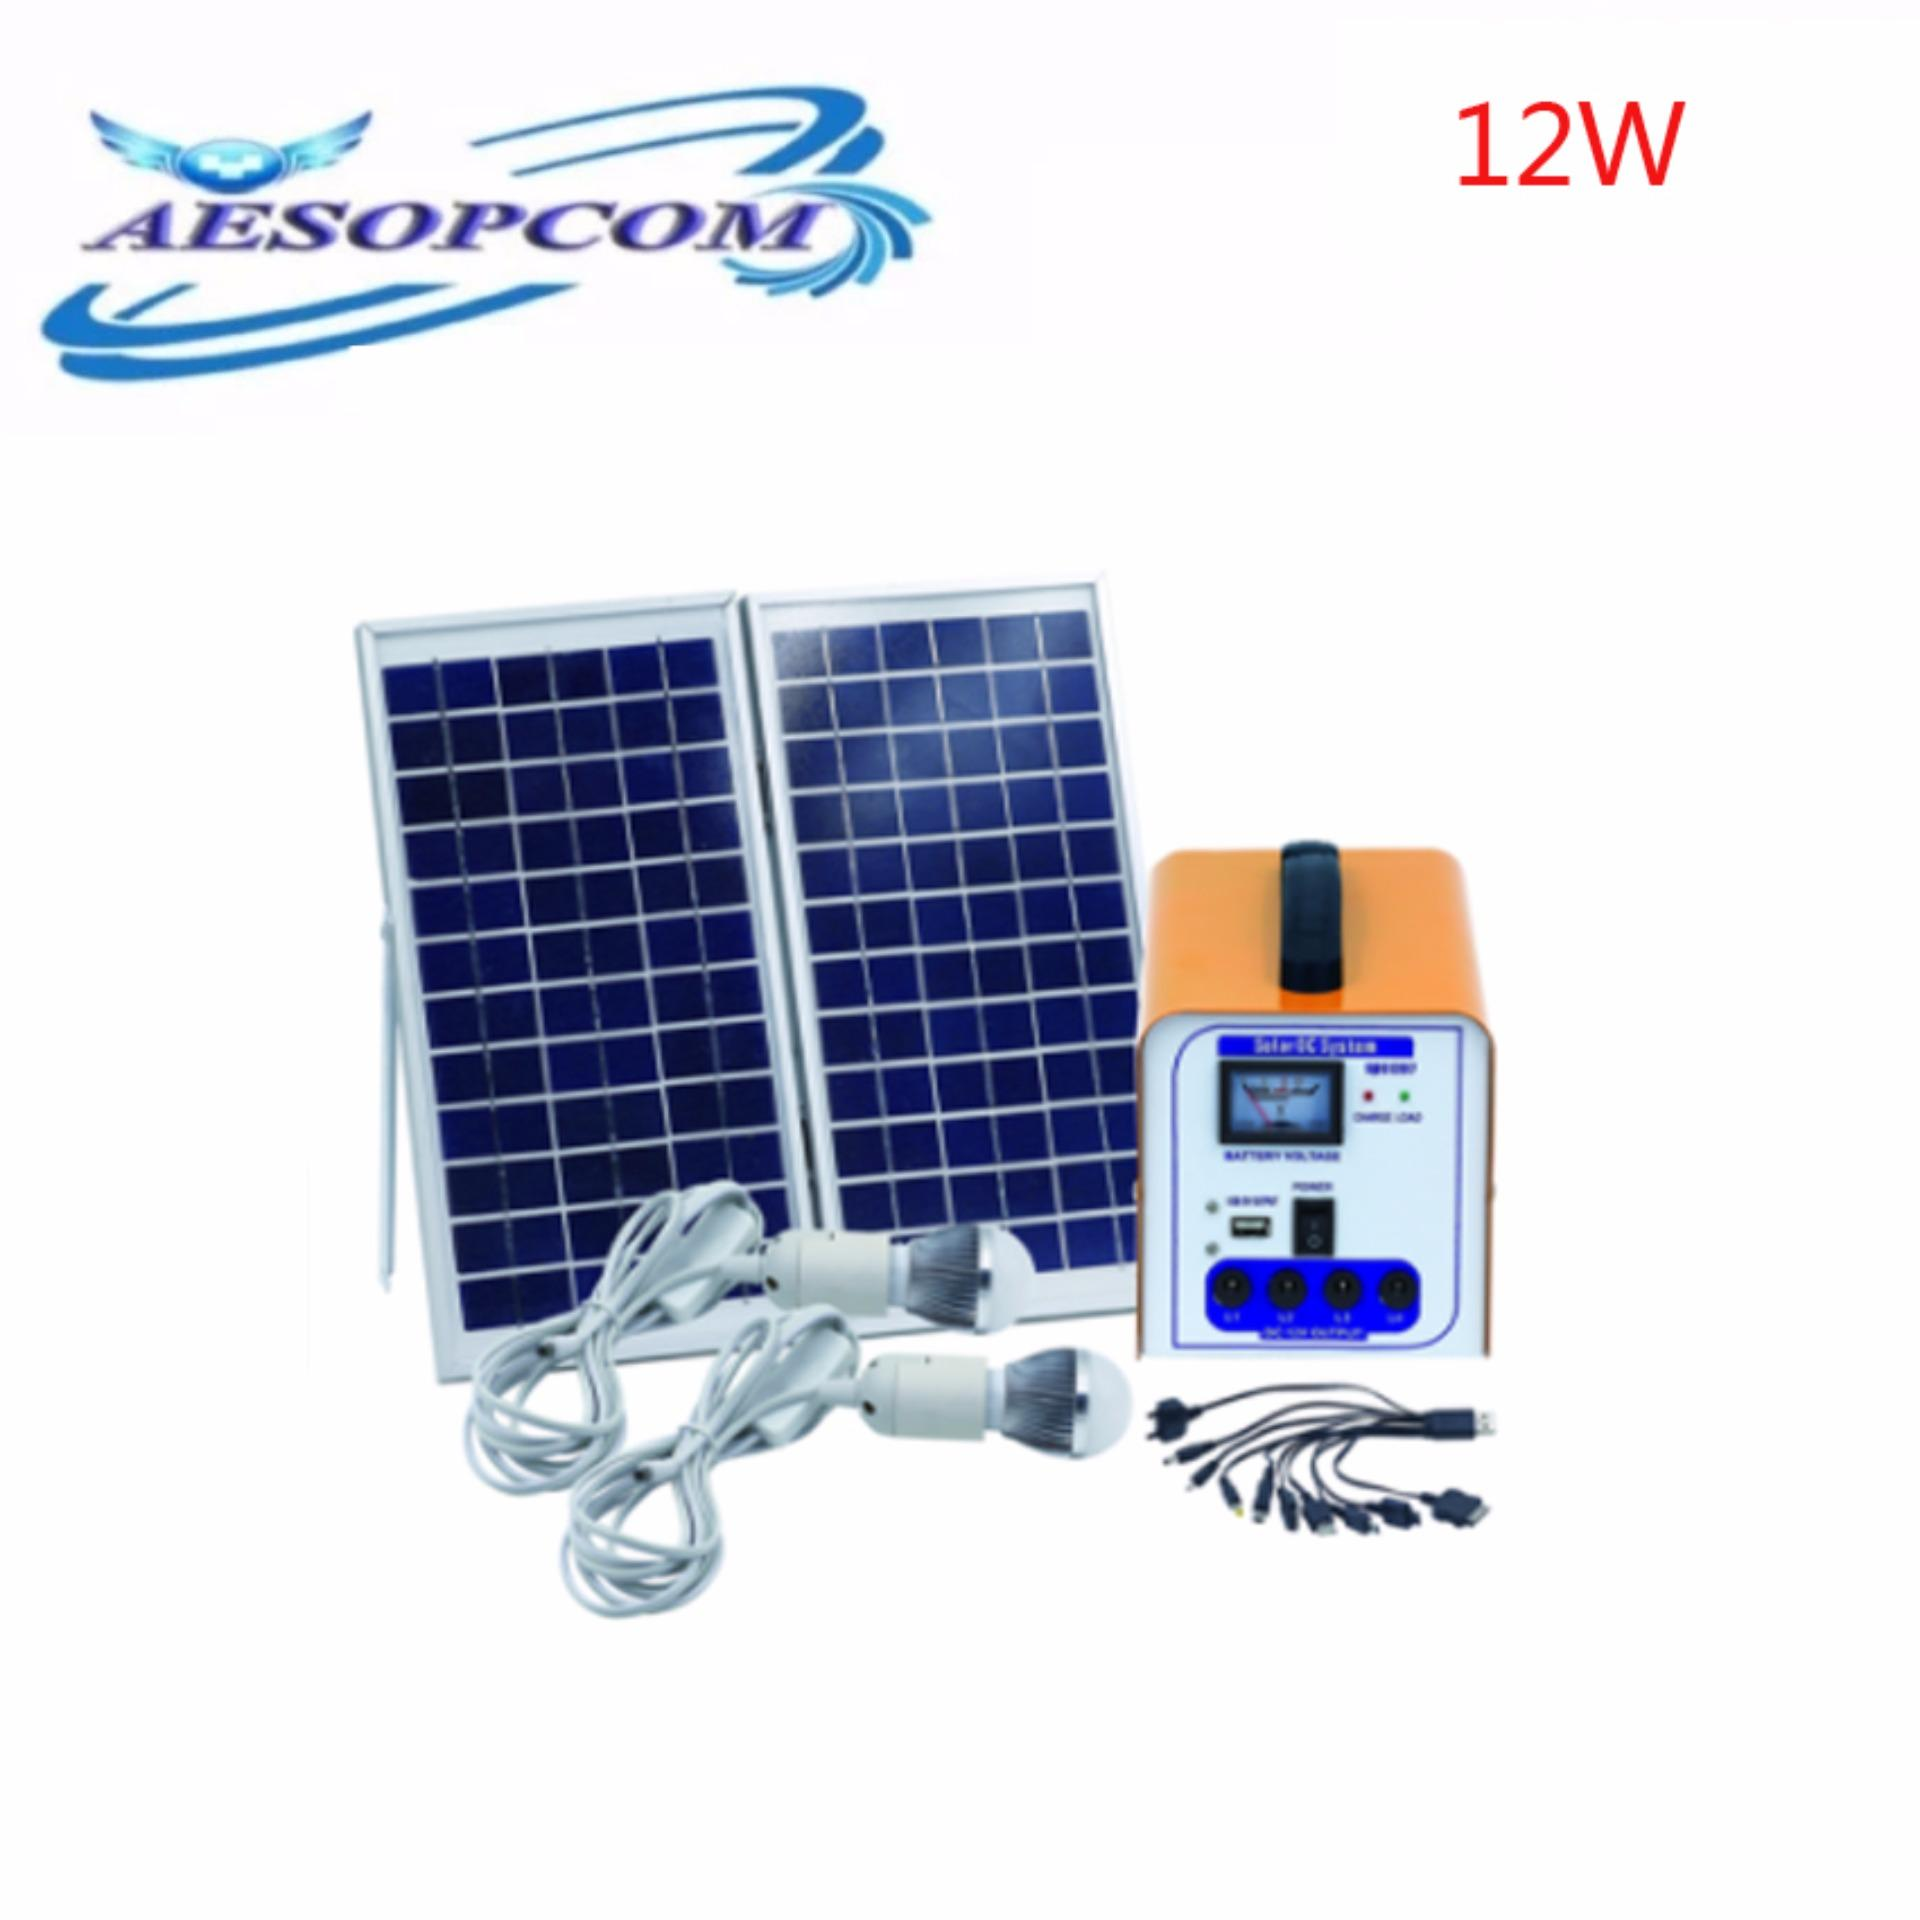 12W solar panel 3W LED light portable solar power energy system forhome indoor hot sale Saudi Arabia